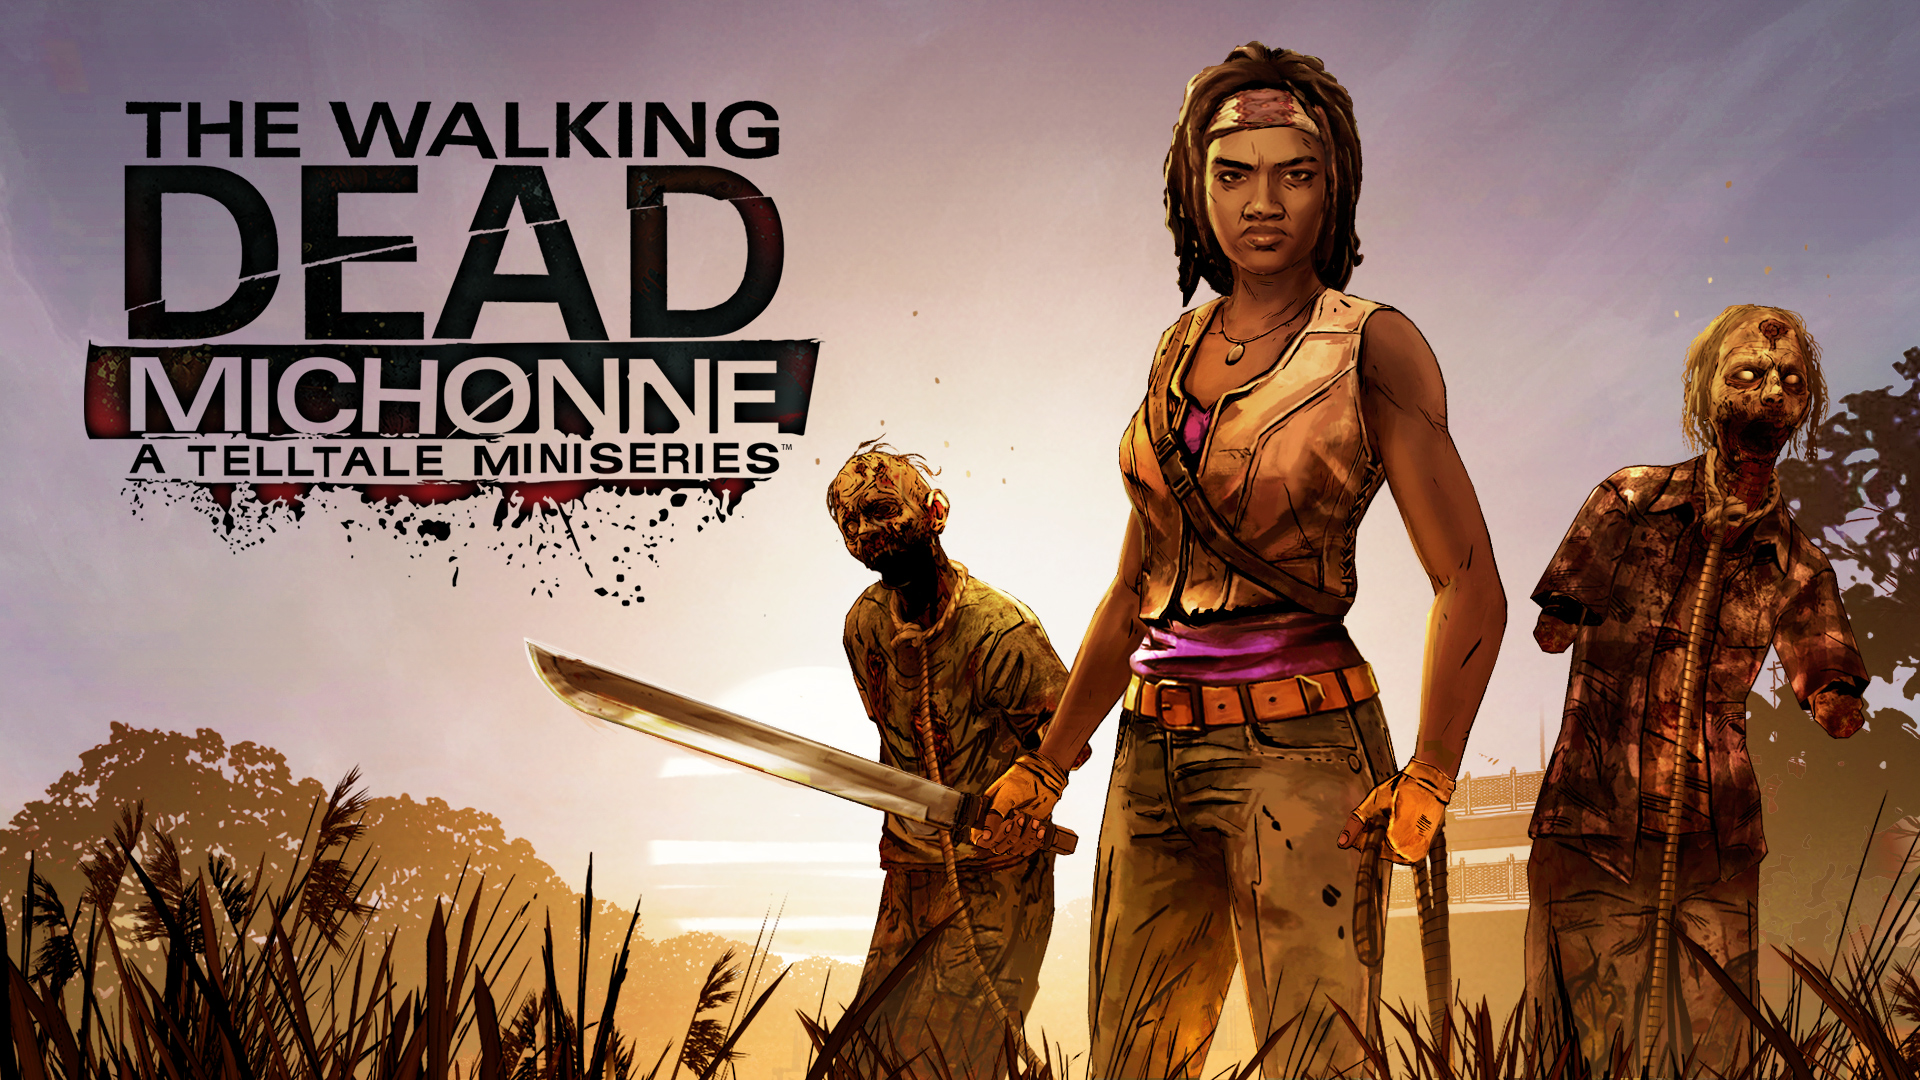 The Walking Dead Michonne key art